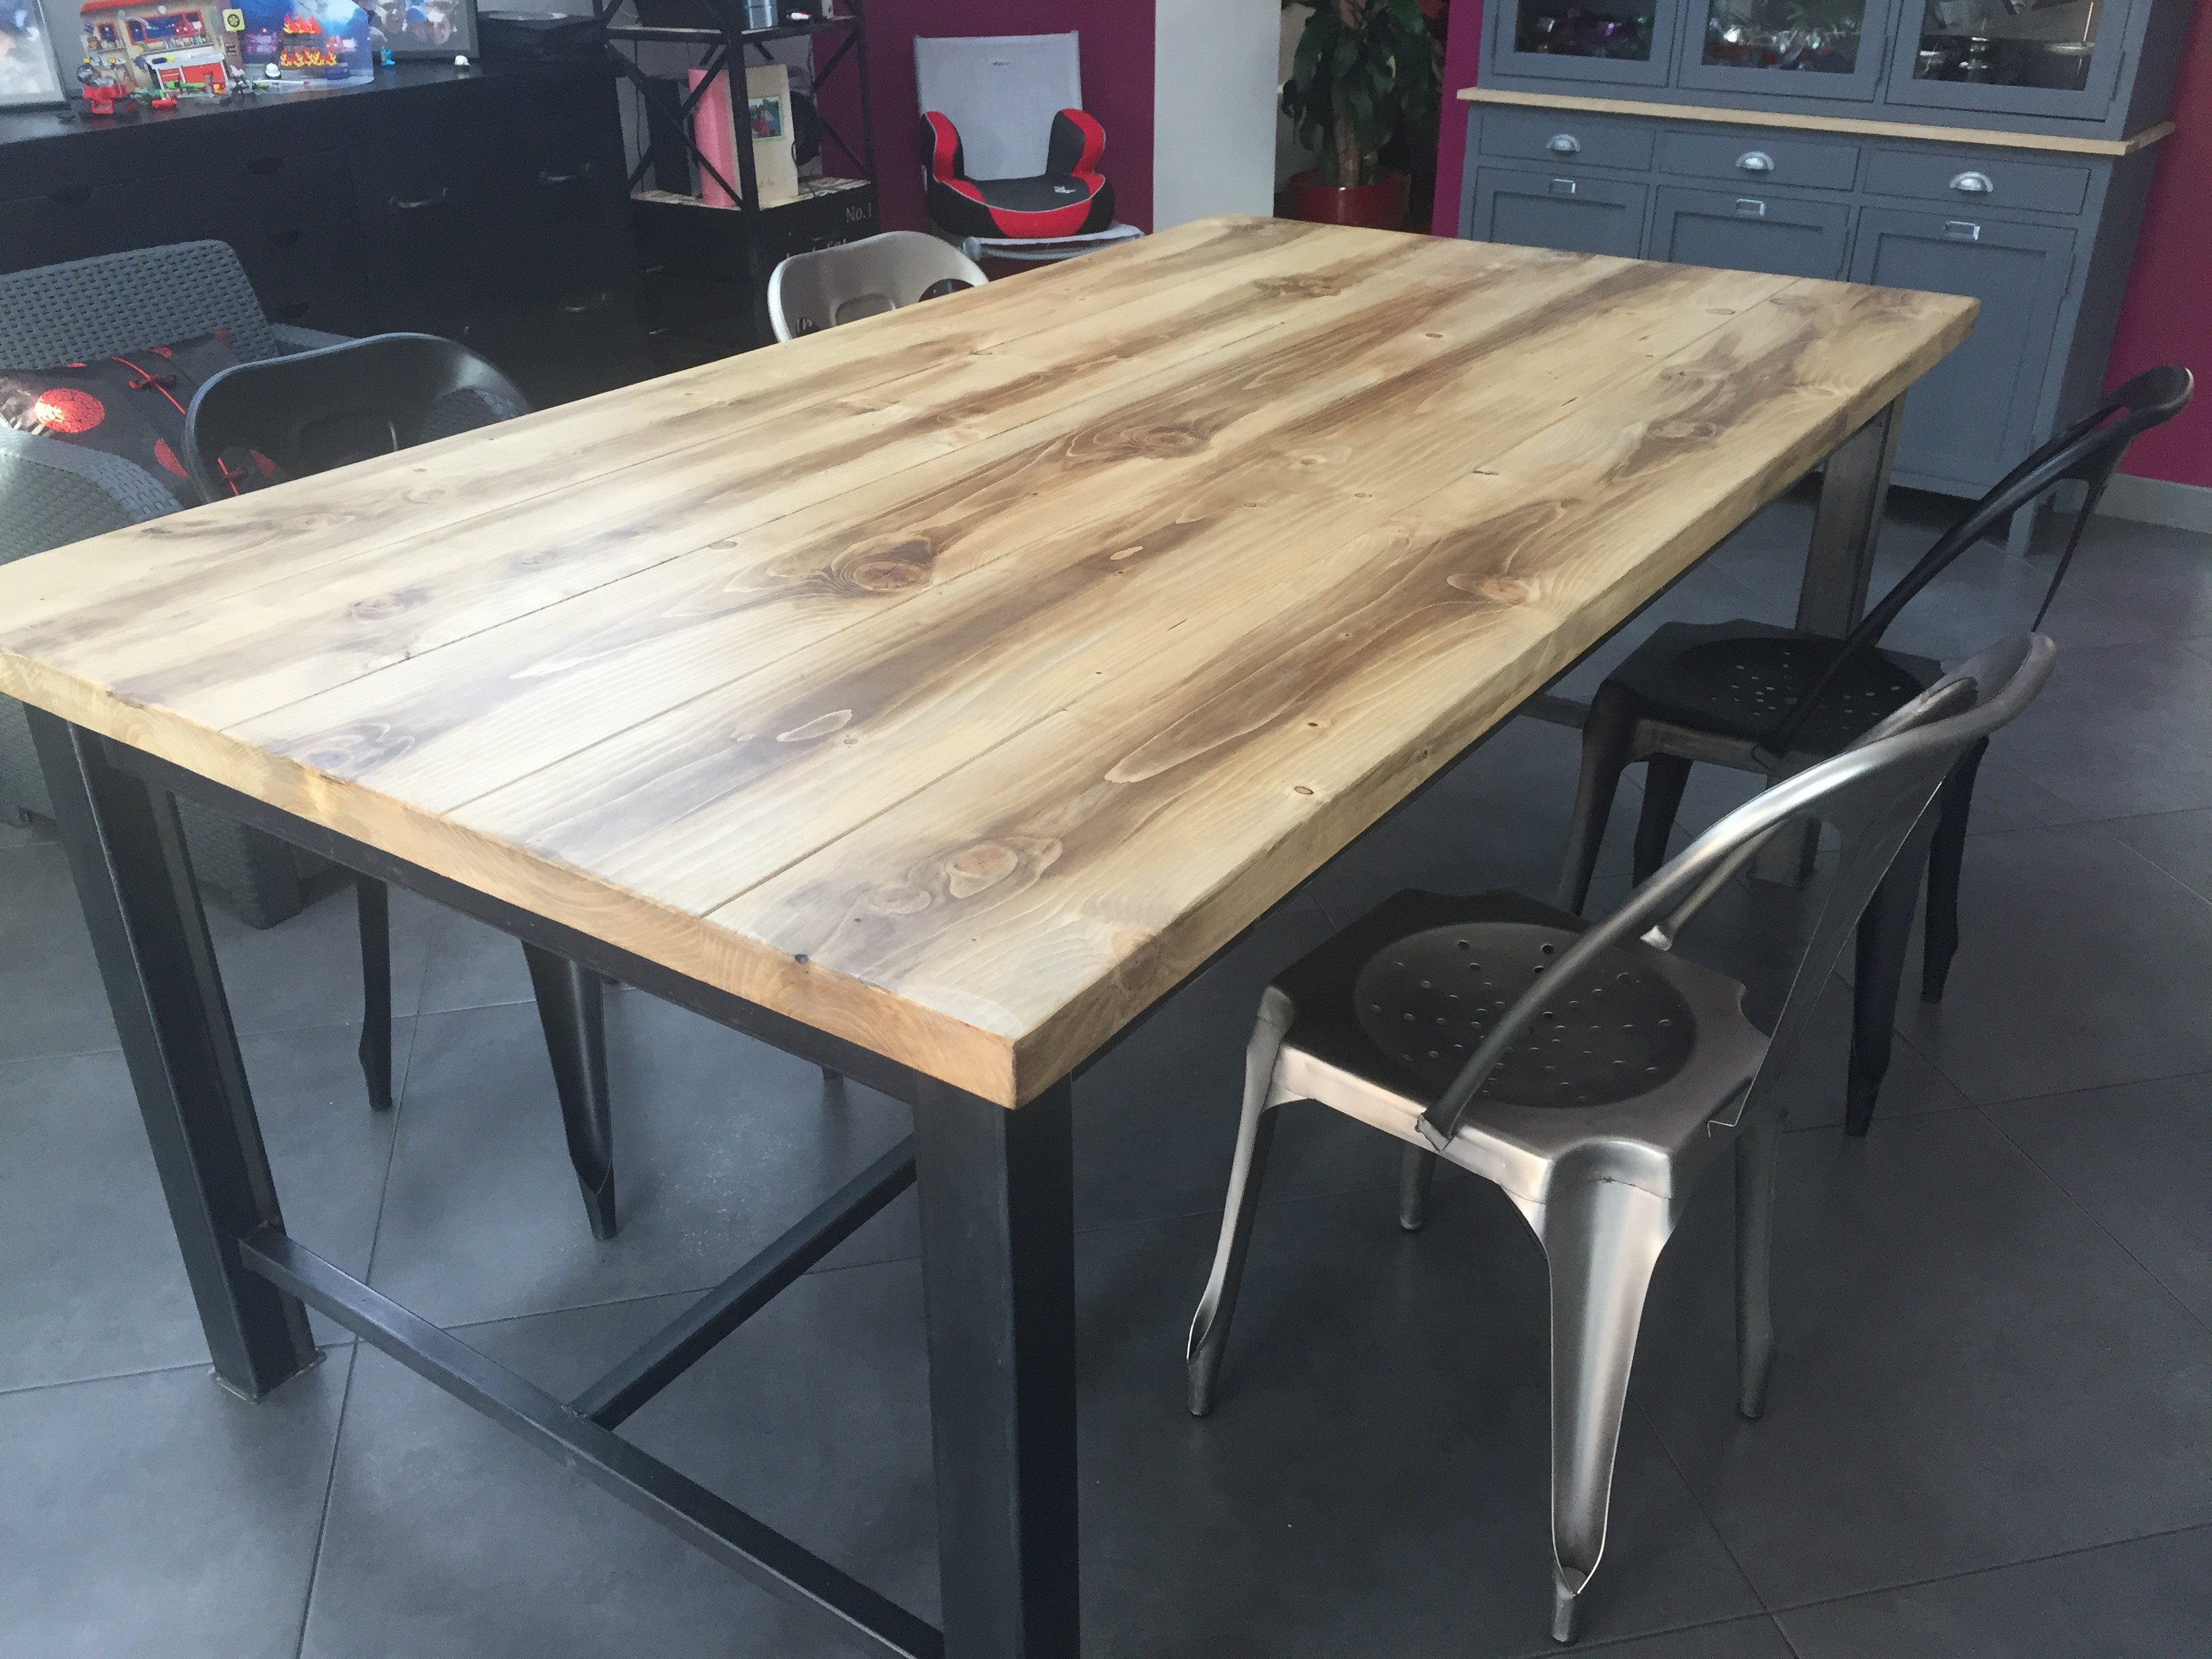 Table basse industrielle fabriquer - Faire une table industrielle ...